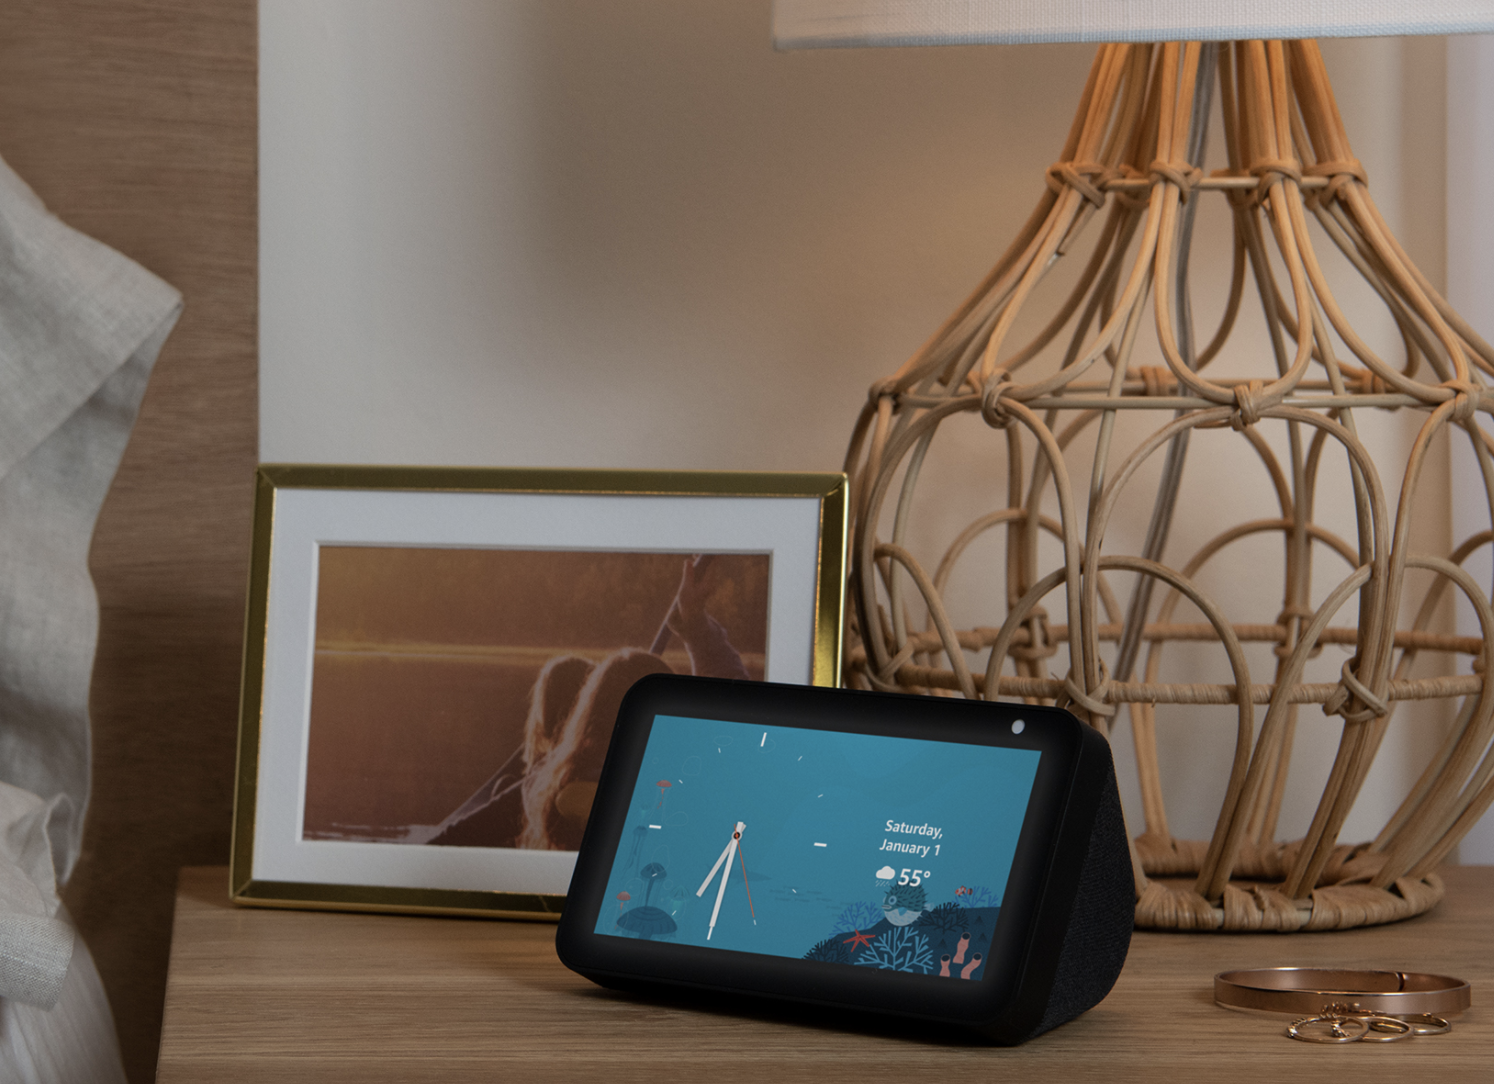 the amazon echo show 5 displaying the date and weather on a nightstand